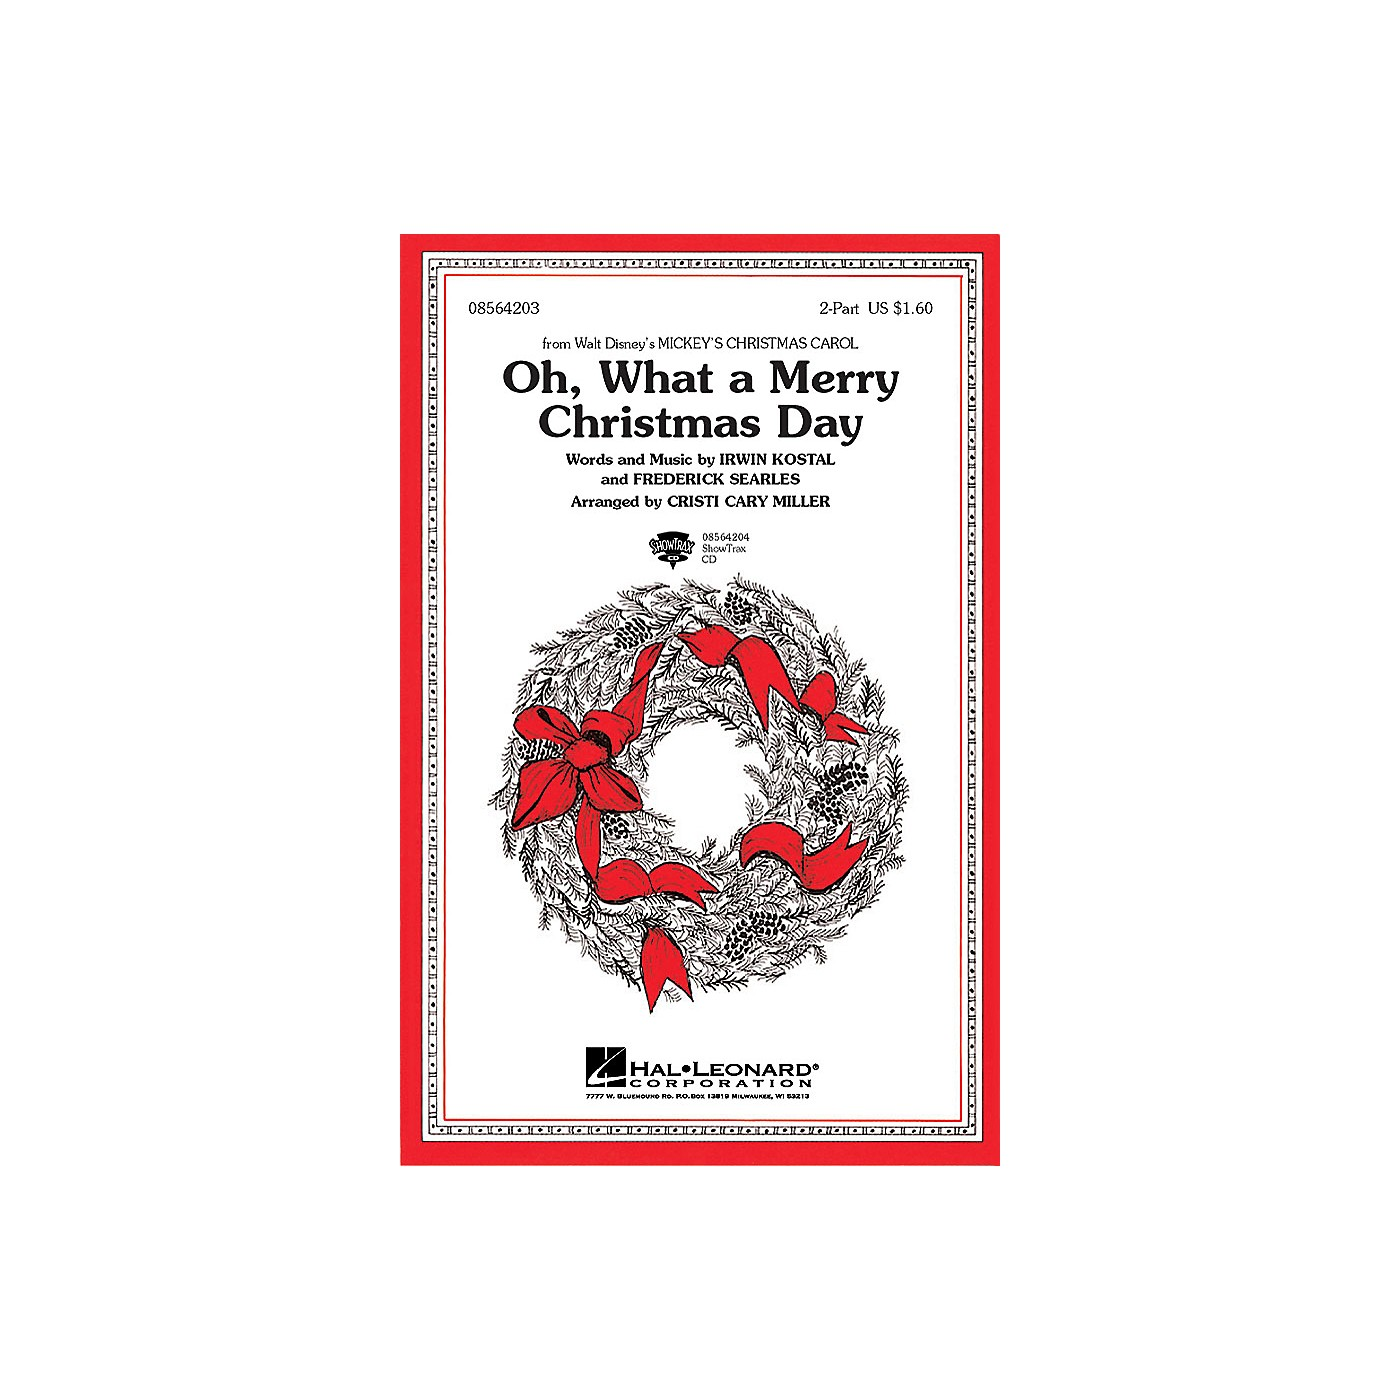 Hal Leonard Oh What a Merry Christmas Day (from Mickey's Christmas Carol) 2-Part arranged by Cristi Cary Miller thumbnail